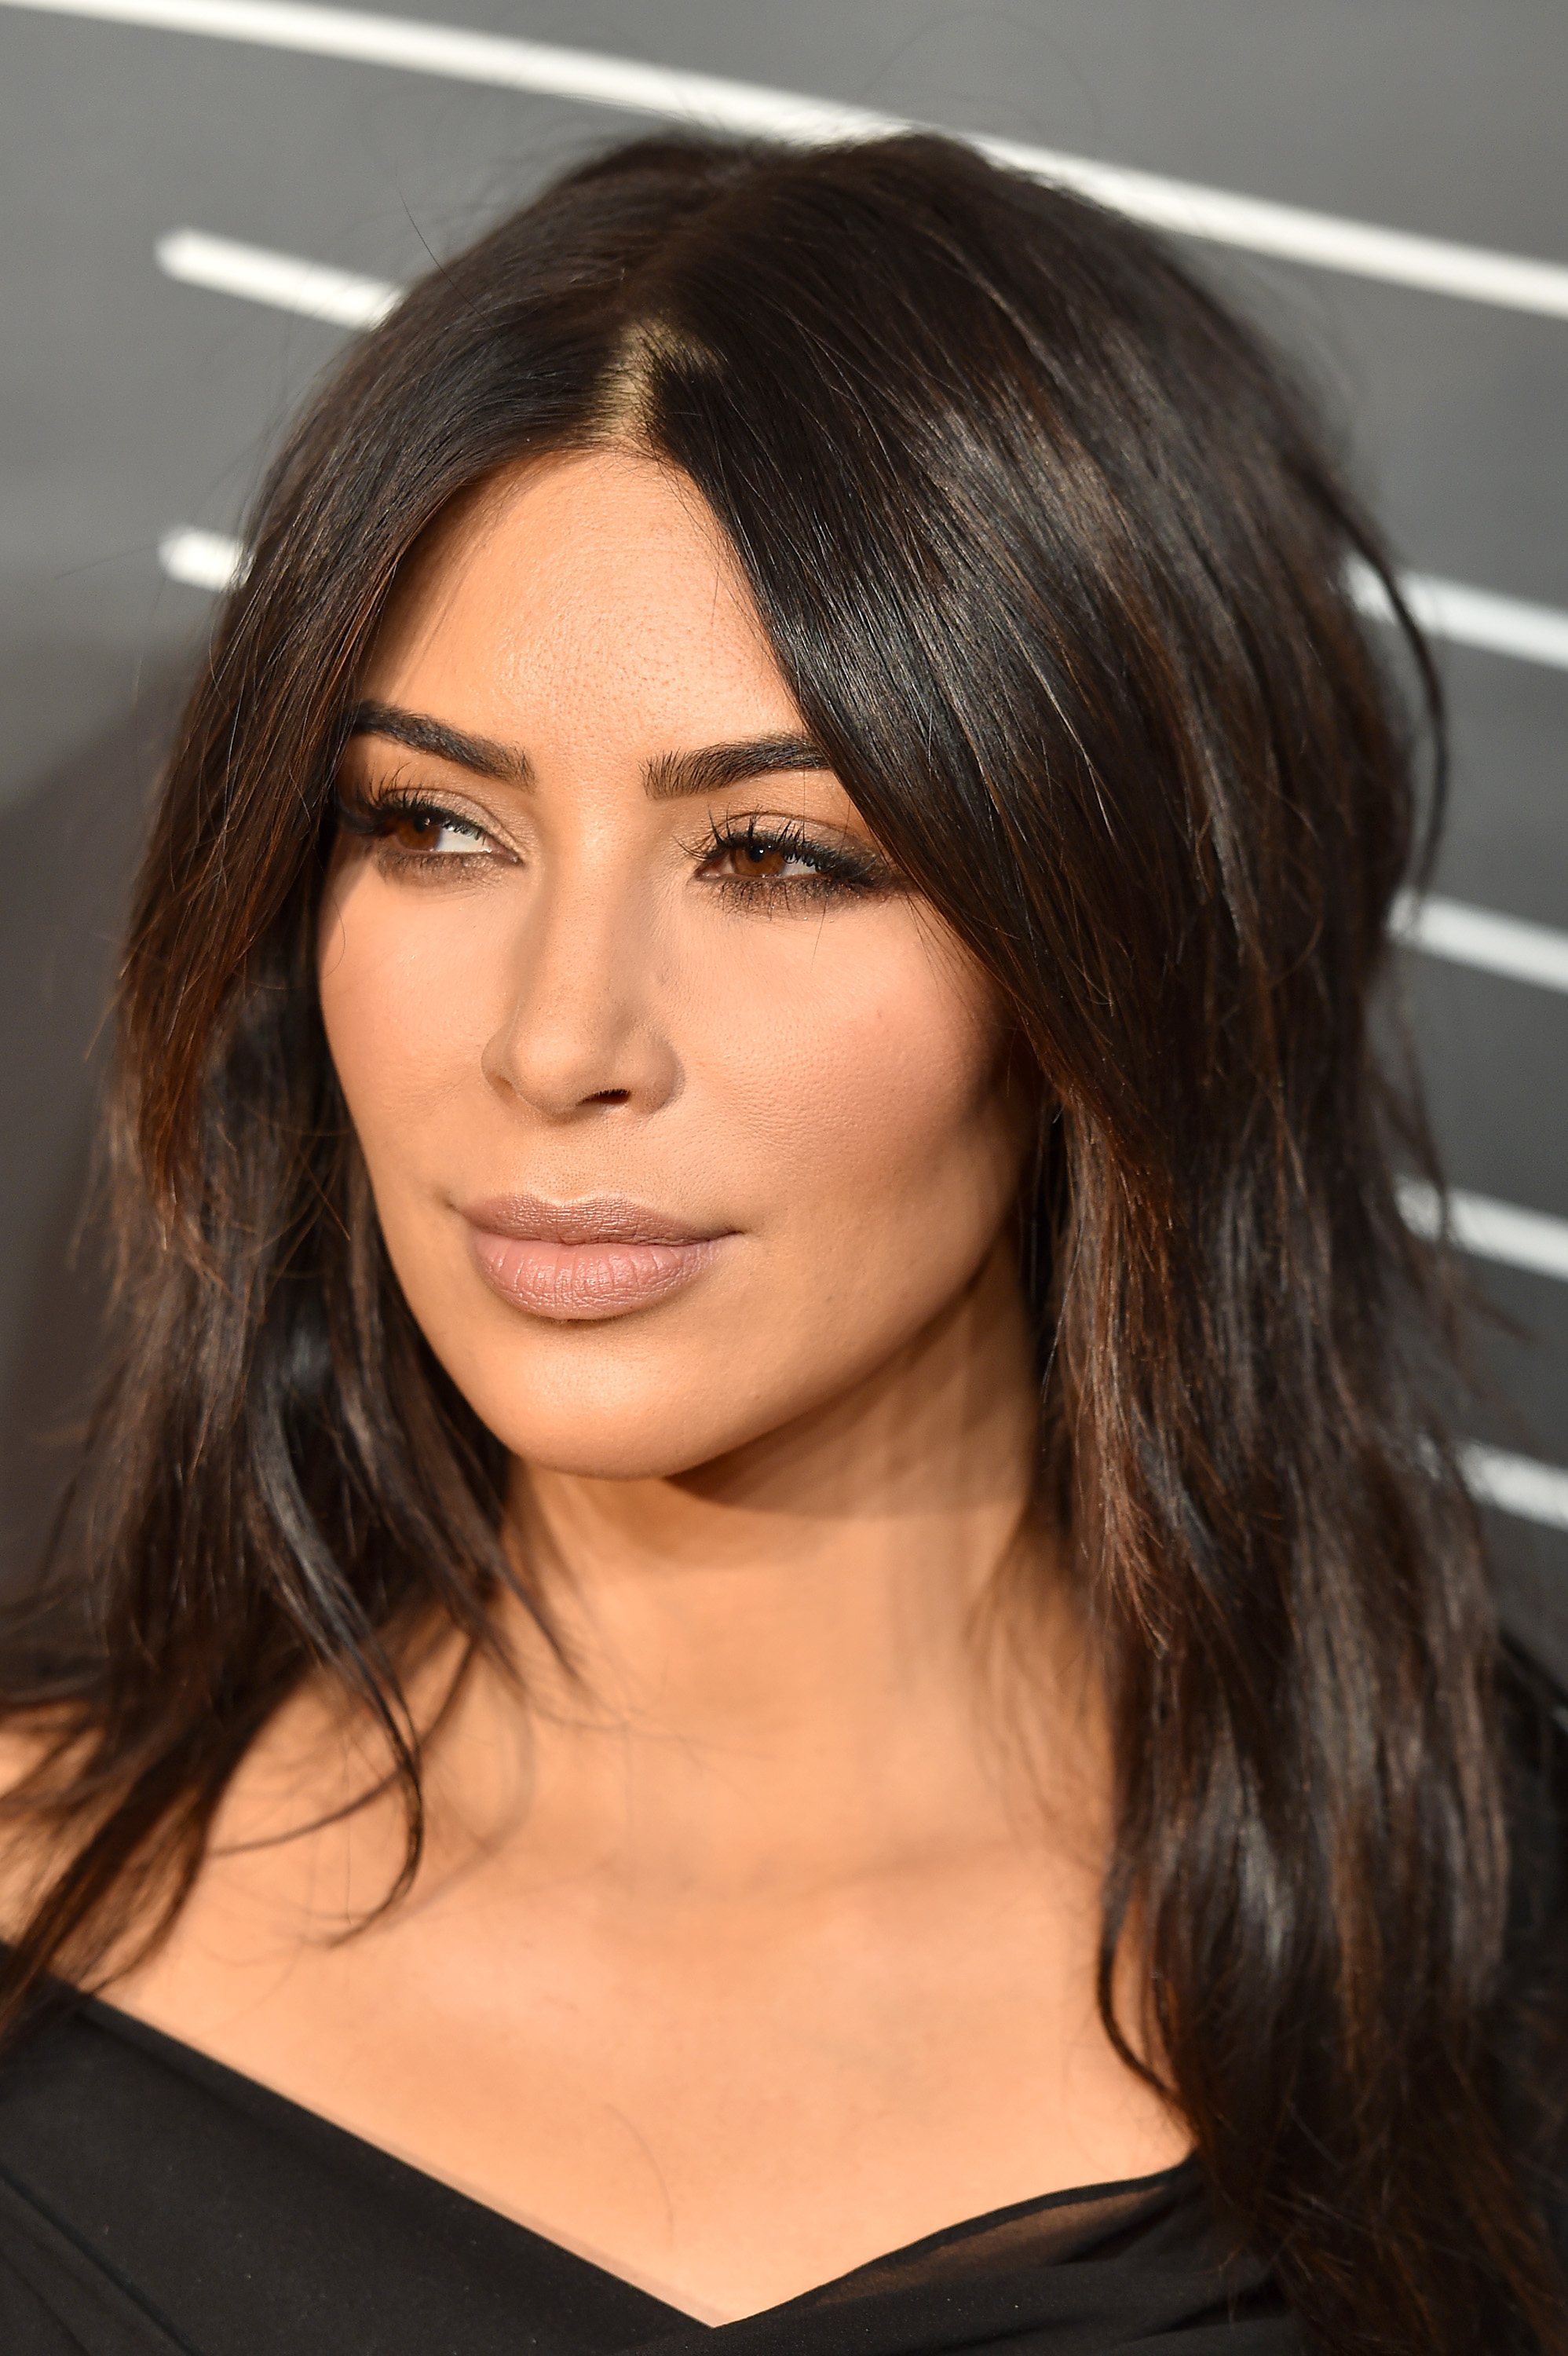 Is Kim Kardashians New Short Hair Cut Real Only Time Will Tell